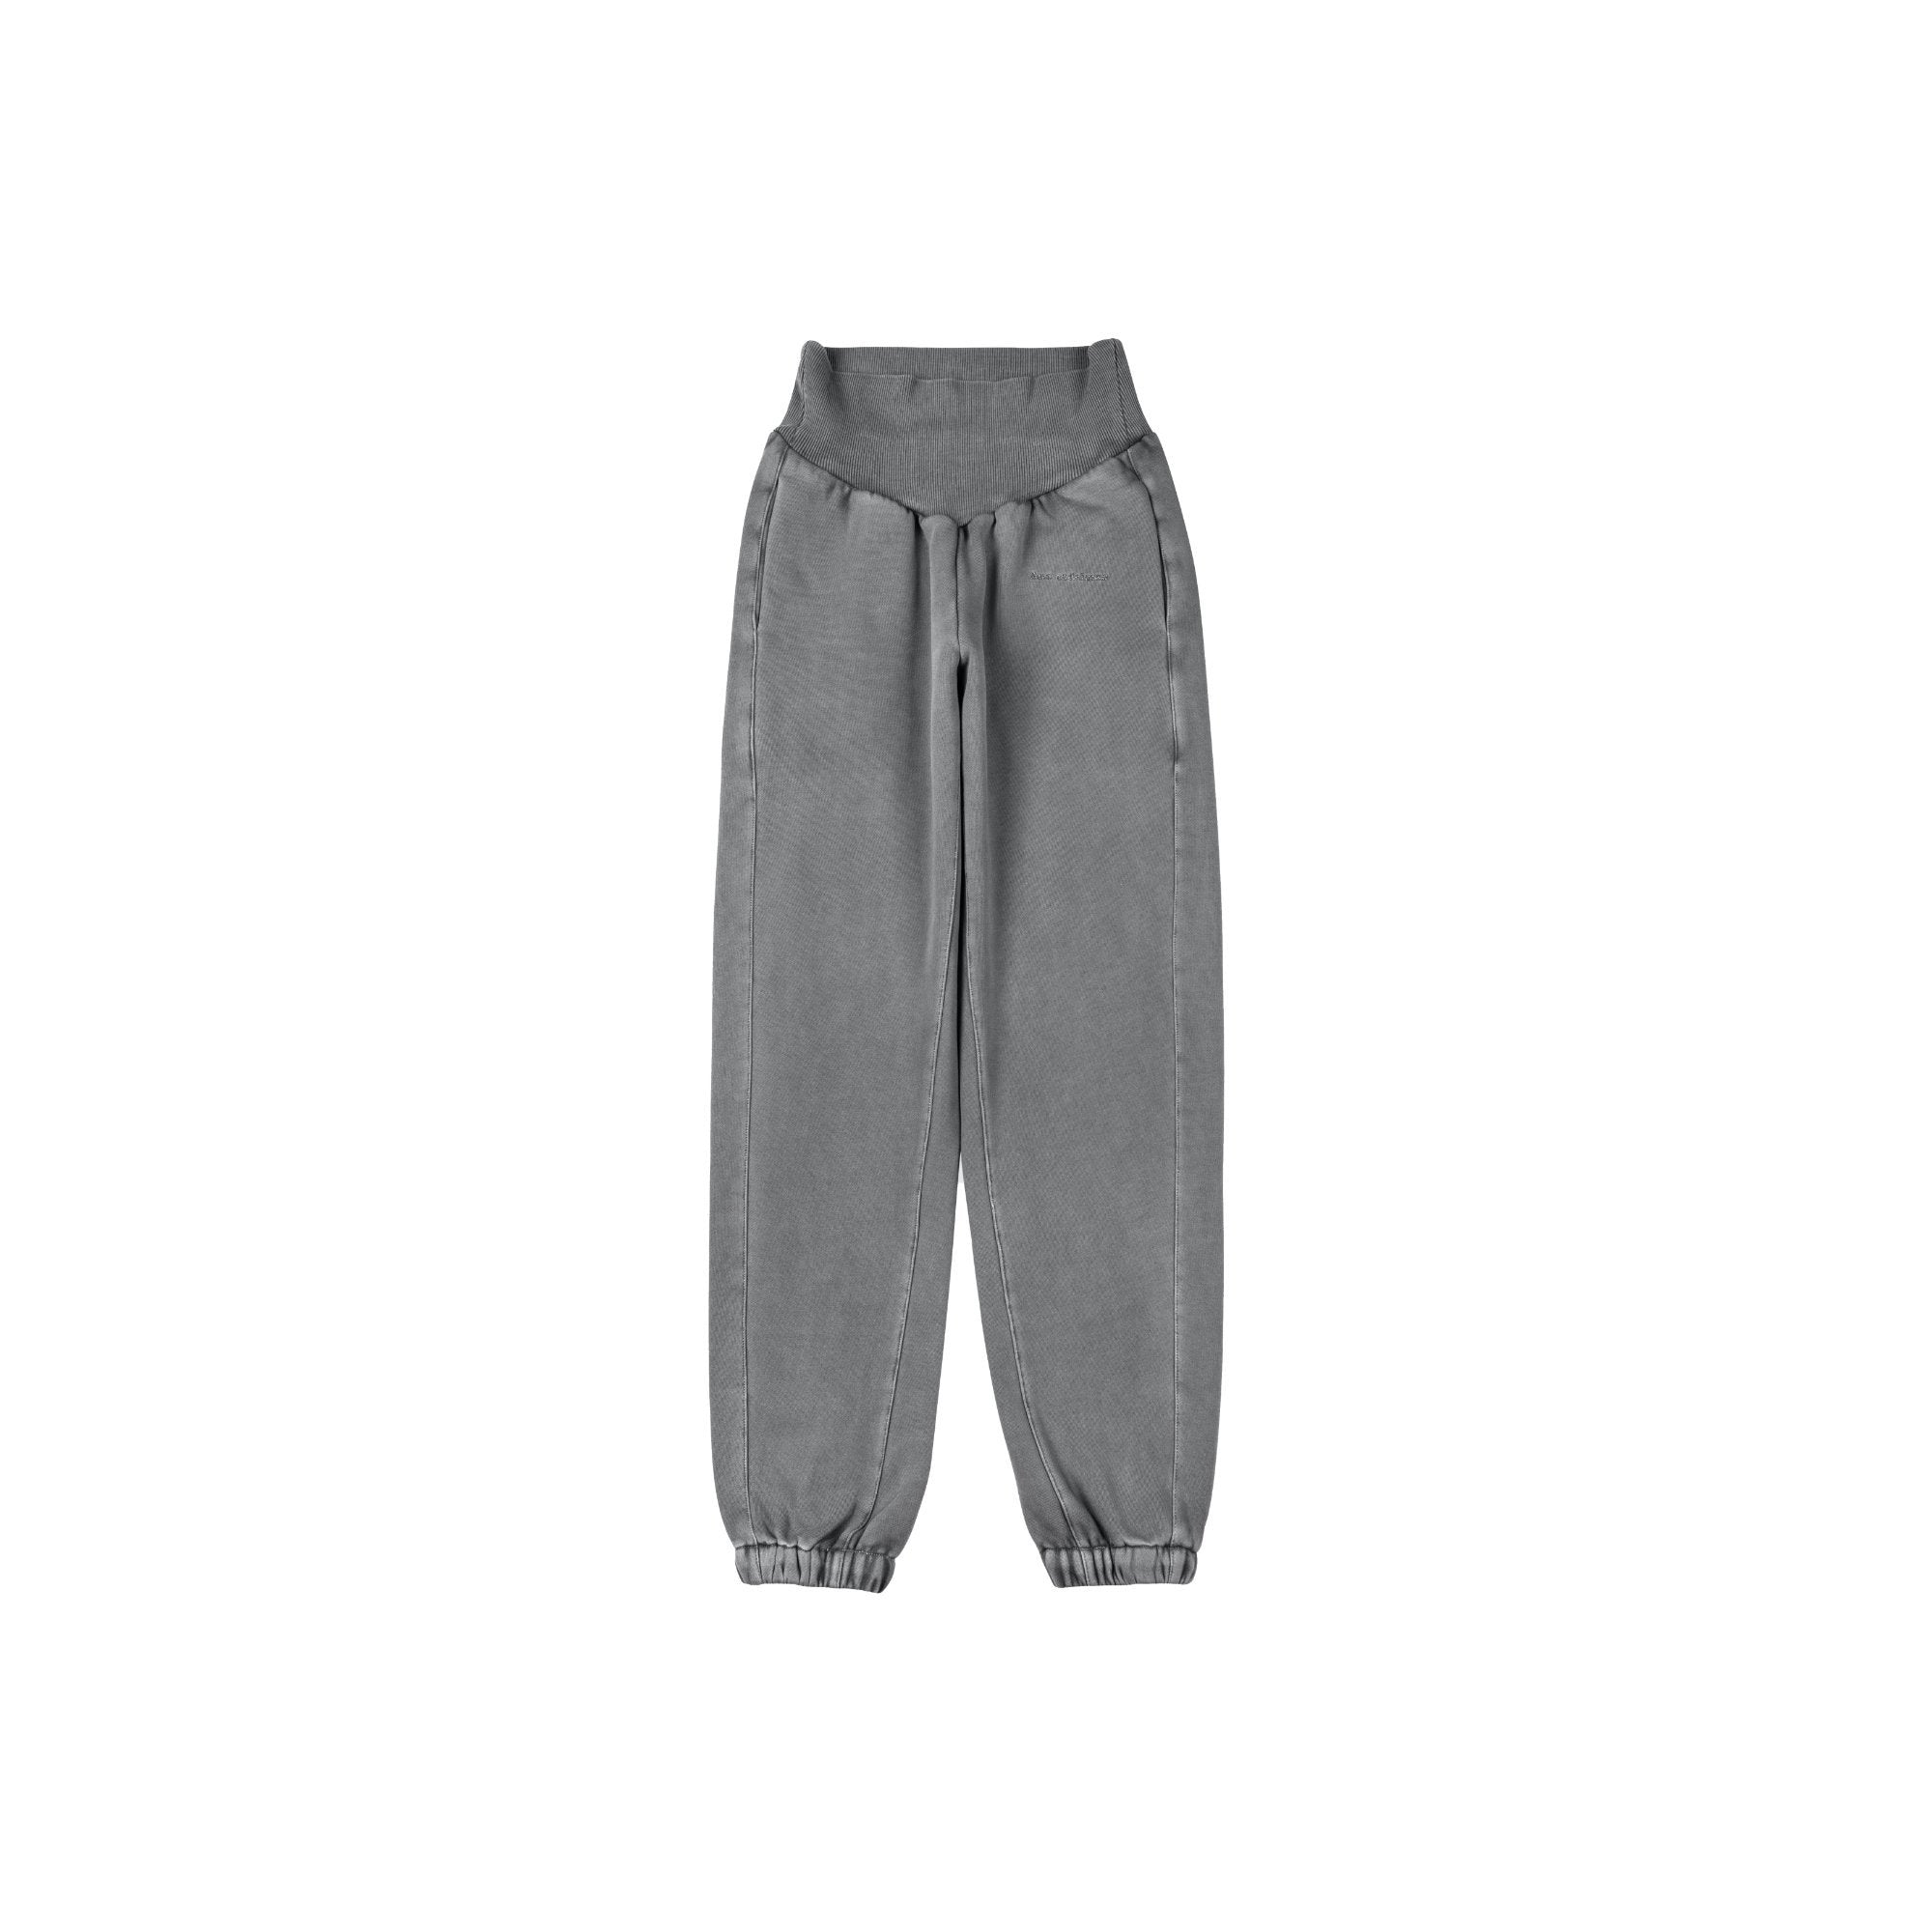 ANN ANDELMAN Grey Sport Pant | MADA IN CHINA